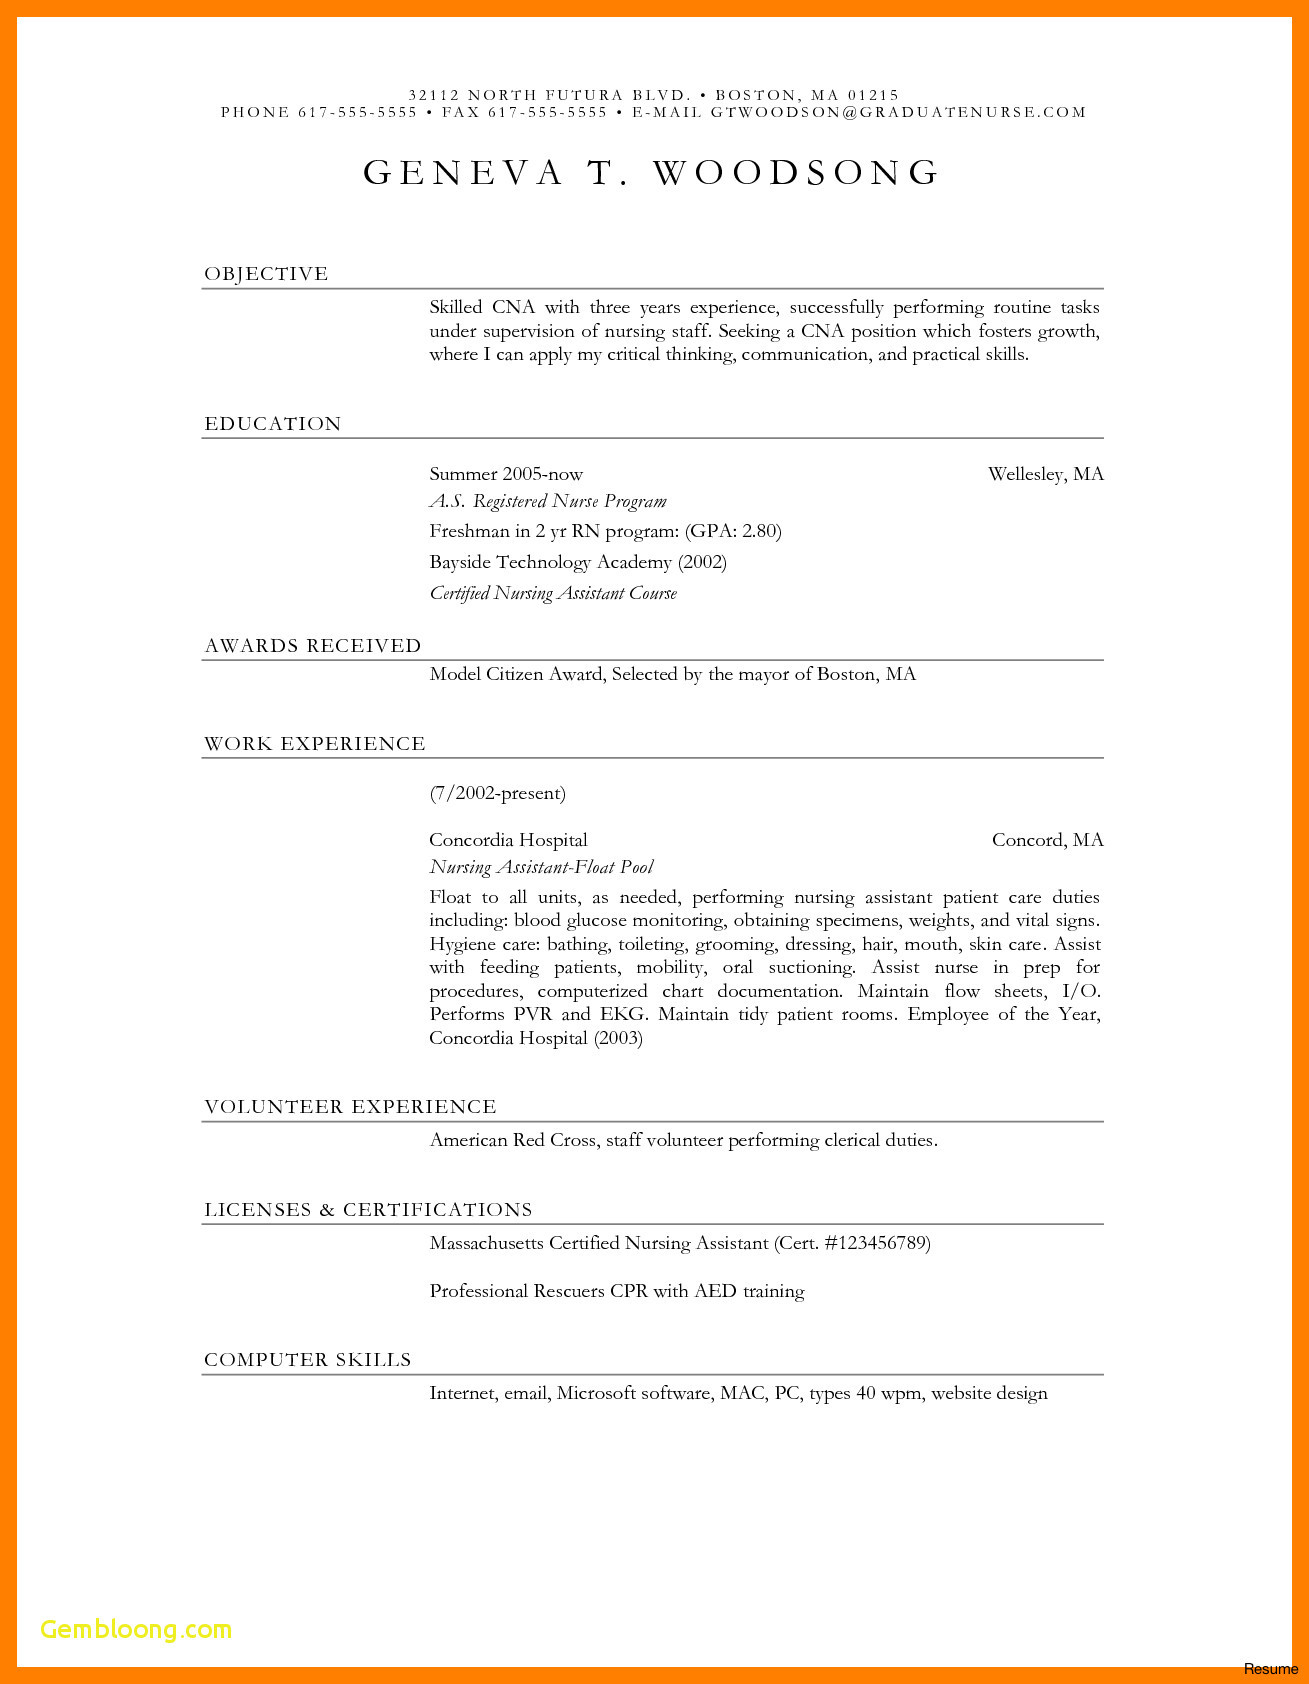 Cover Letter Template Mac - Free Cover Letter and Resume Templates Inspirational Free Resume